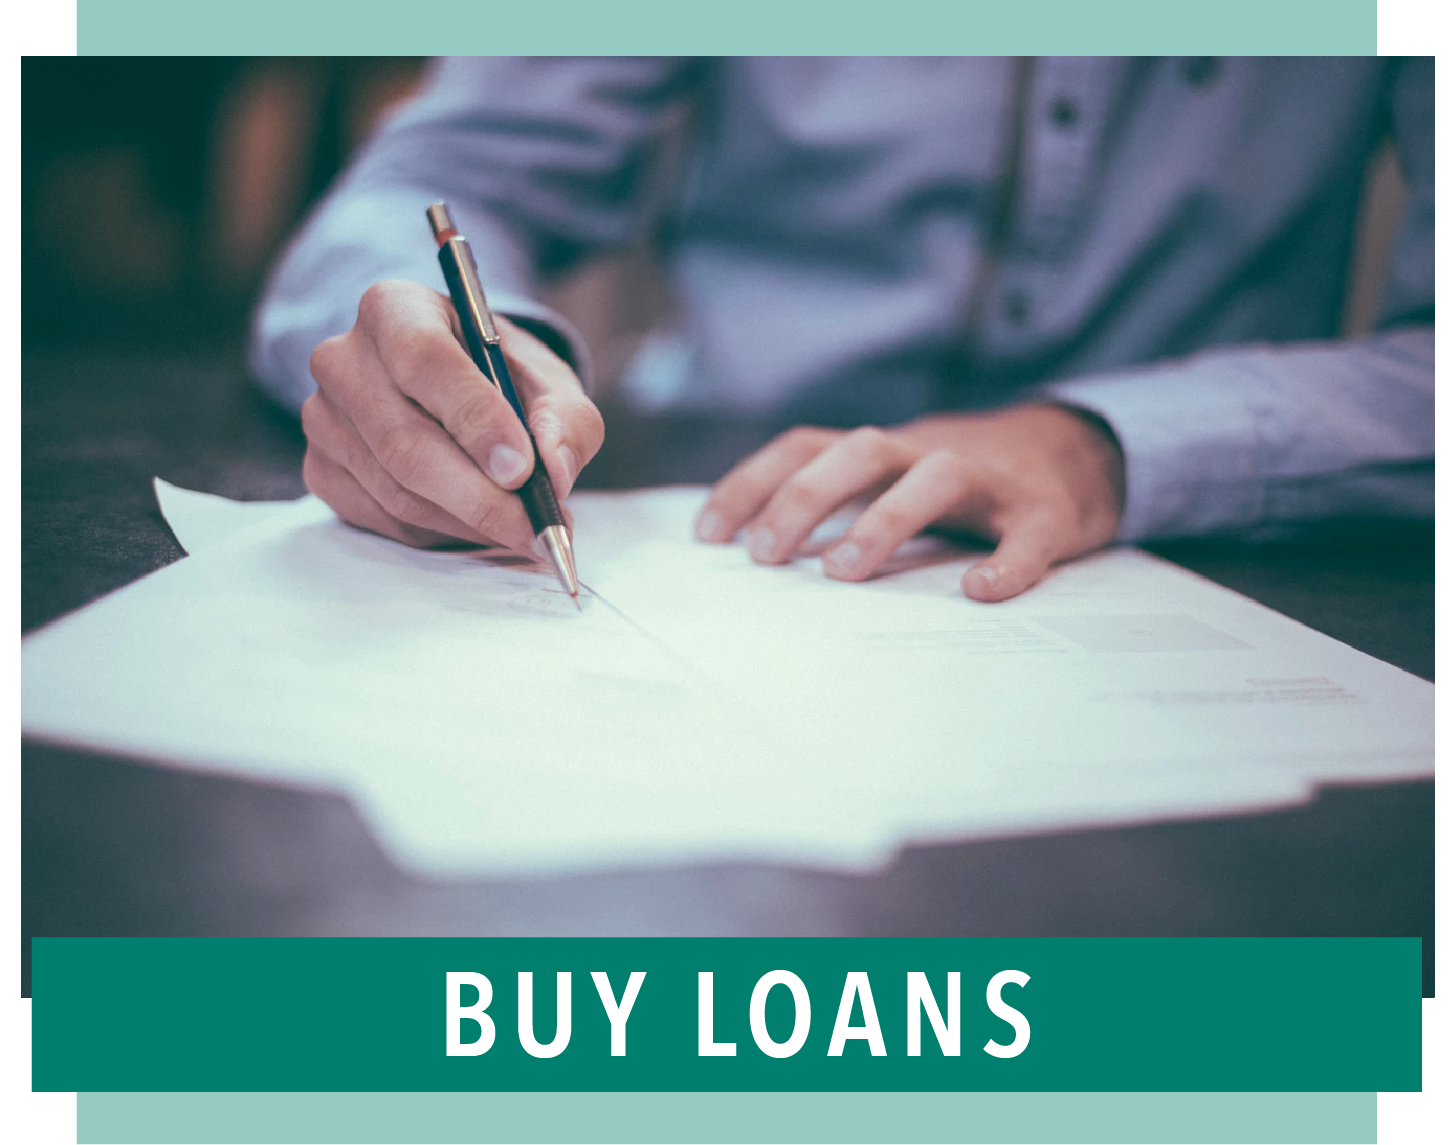 - Brownstone is a privately held mortgage company, established in 1980. We buy seller carried-back mortgages as well bank originated mortgages, secured by commercial real estate. Our attention goes to: motels, restaurants, used car lots, commercial office buildings, commercial retail buildings and more.